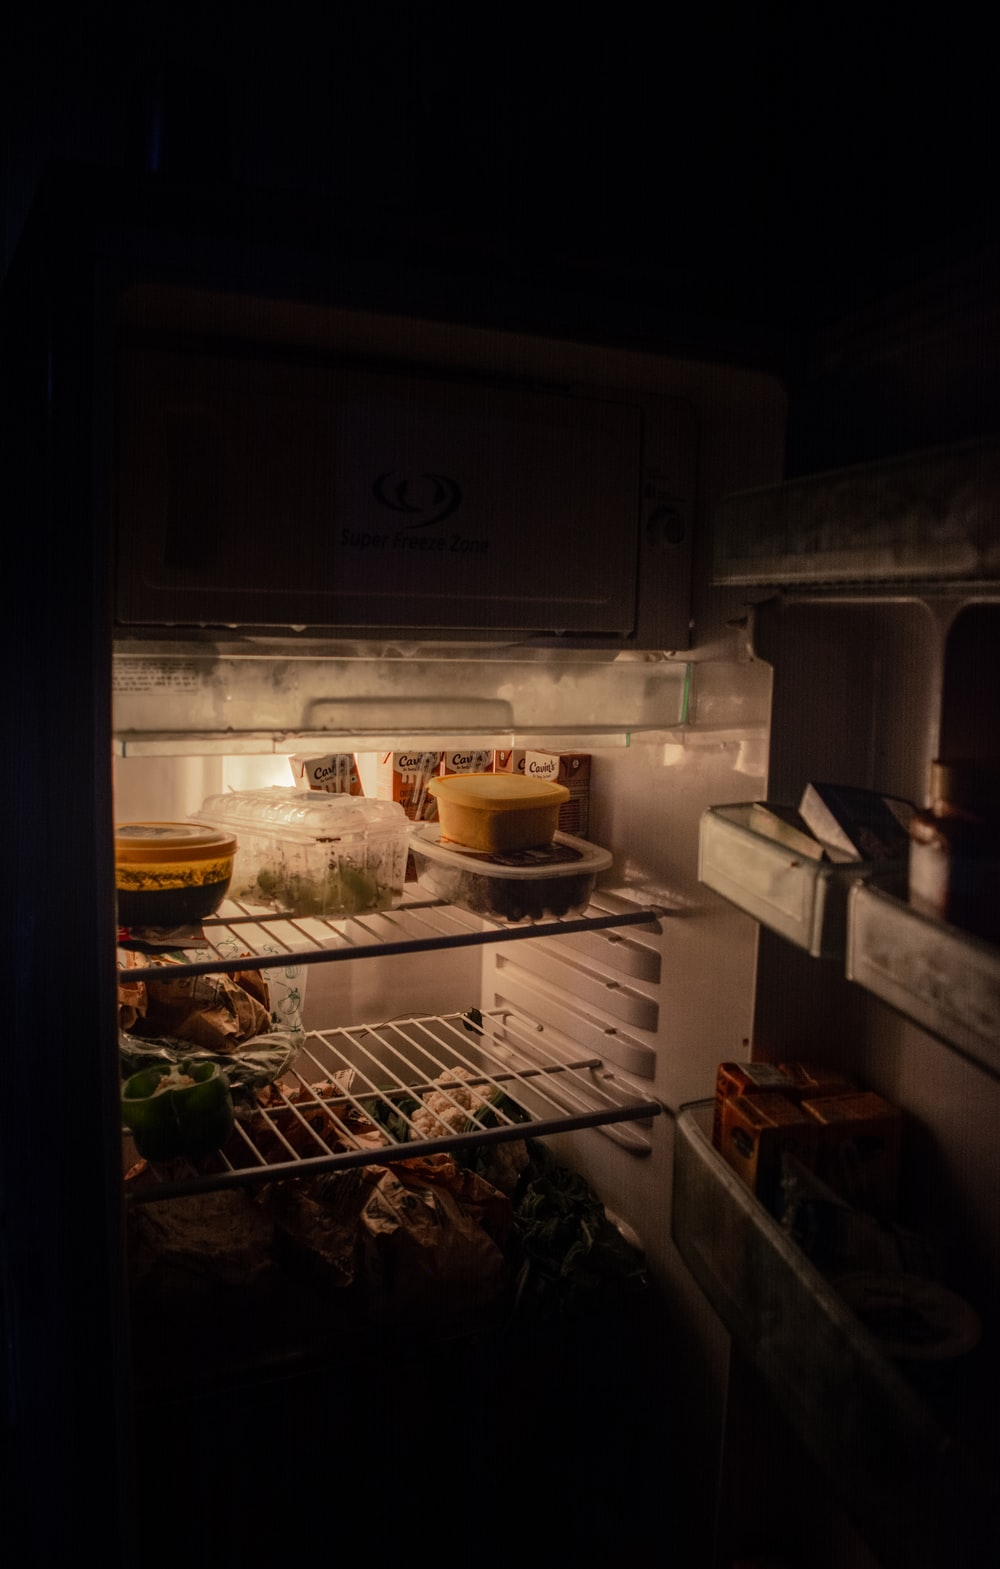 white refrigerator with food inside